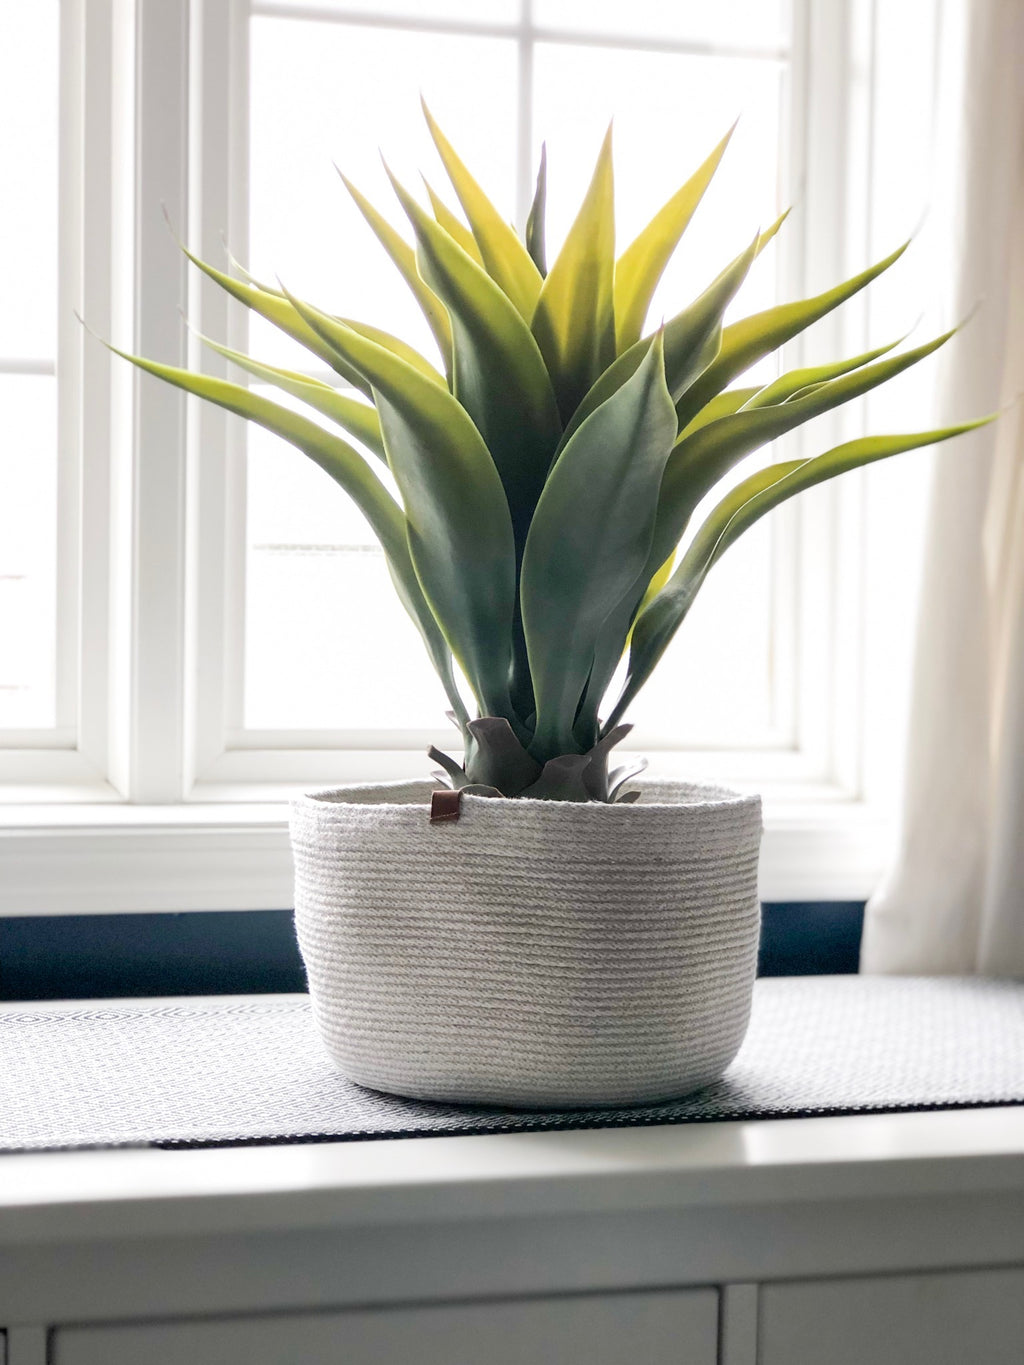 MEDIUM PLANTER / MonoTone, Woven by Amy Billinghurst